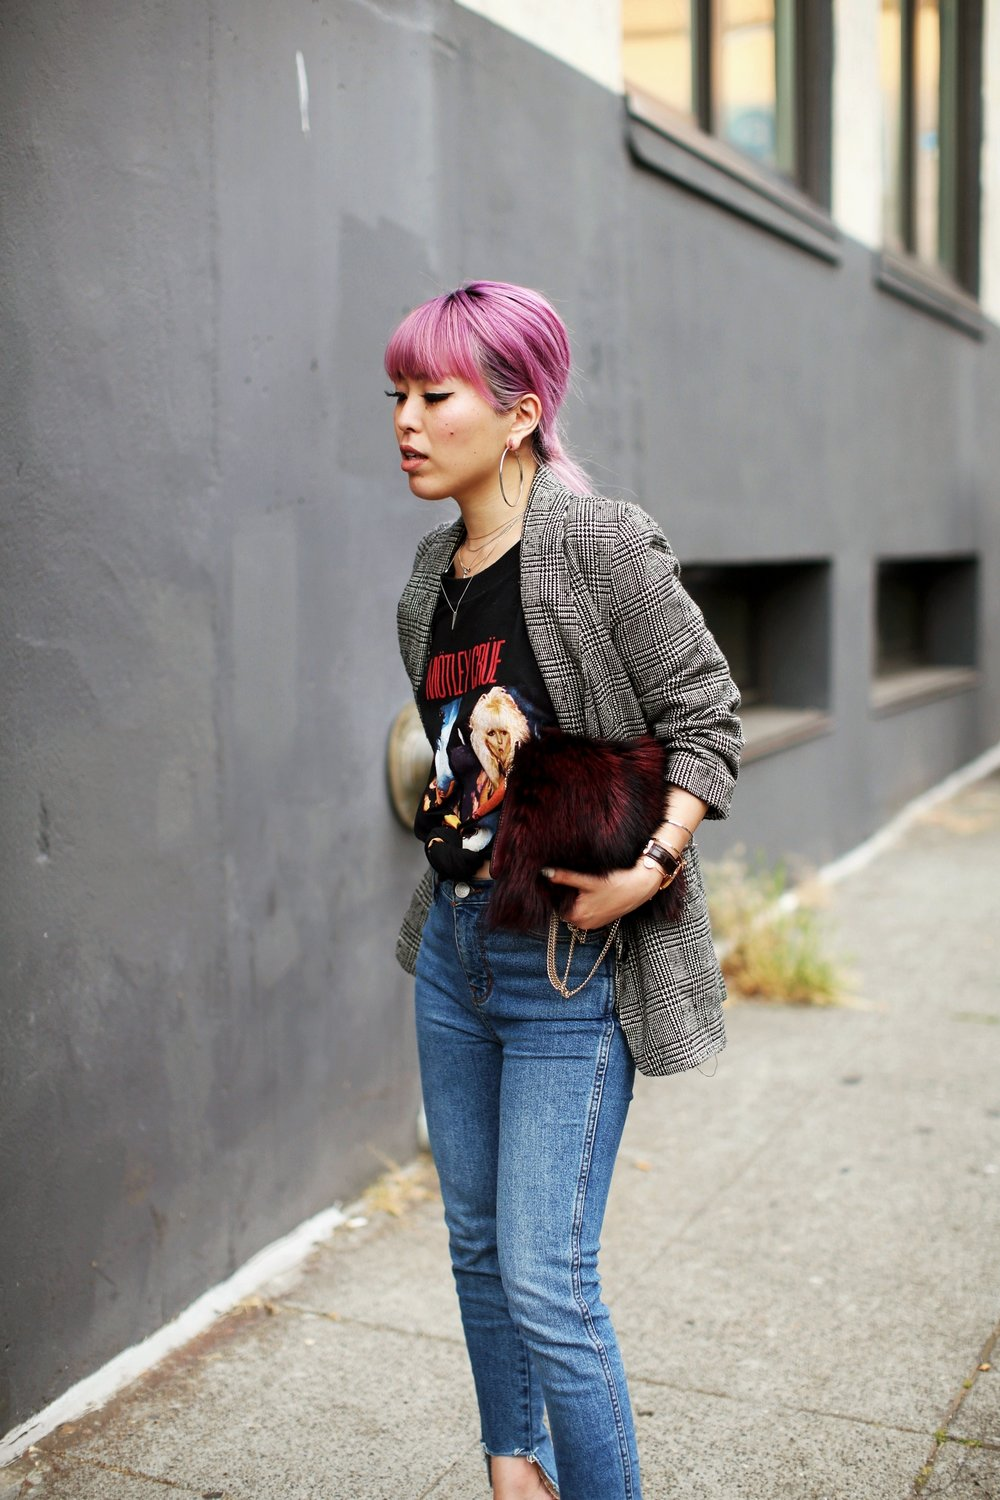 Nordstrom Plaid Blazer_Vintage Rockband Tee_Free People High Waisted Jeans_Daniel Wellington Watch_ASOS Black Mules_DVF Fur Bag_Swarovski Remix Collection Smiling Face_Pink Hair_Aika's Love Closet_Seattle Fashion Style Blogger_Japanese 17